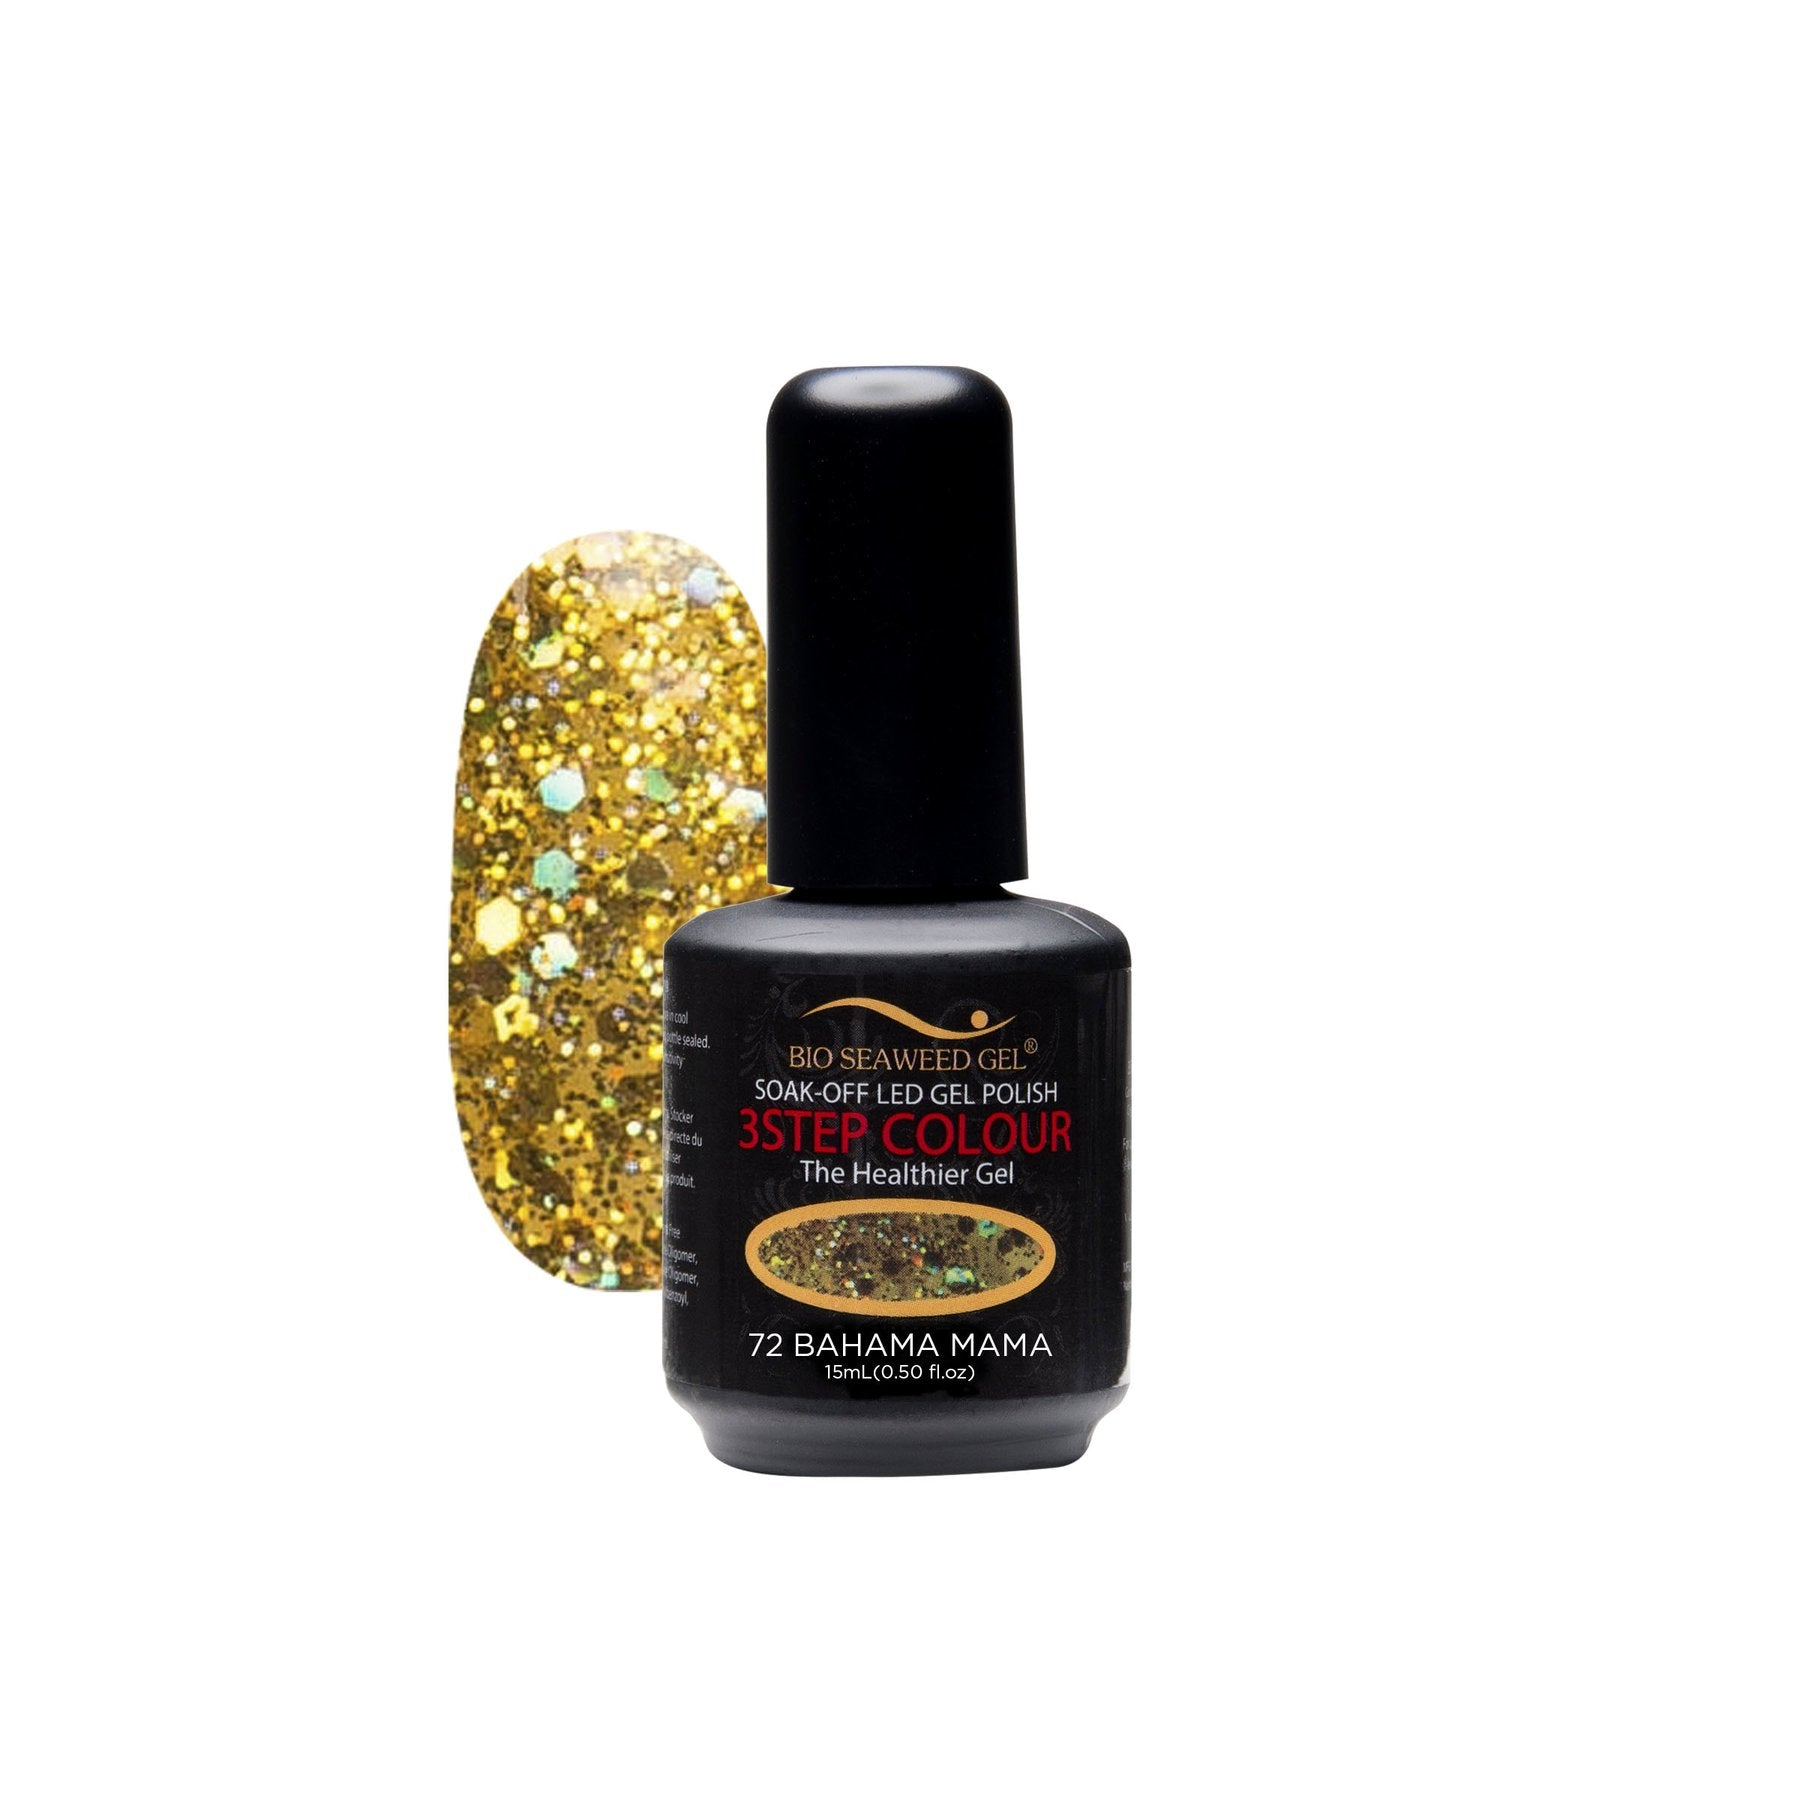 72 Bahama Mama | Bio Seaweed Gel® - CM Nails & Beauty Supply